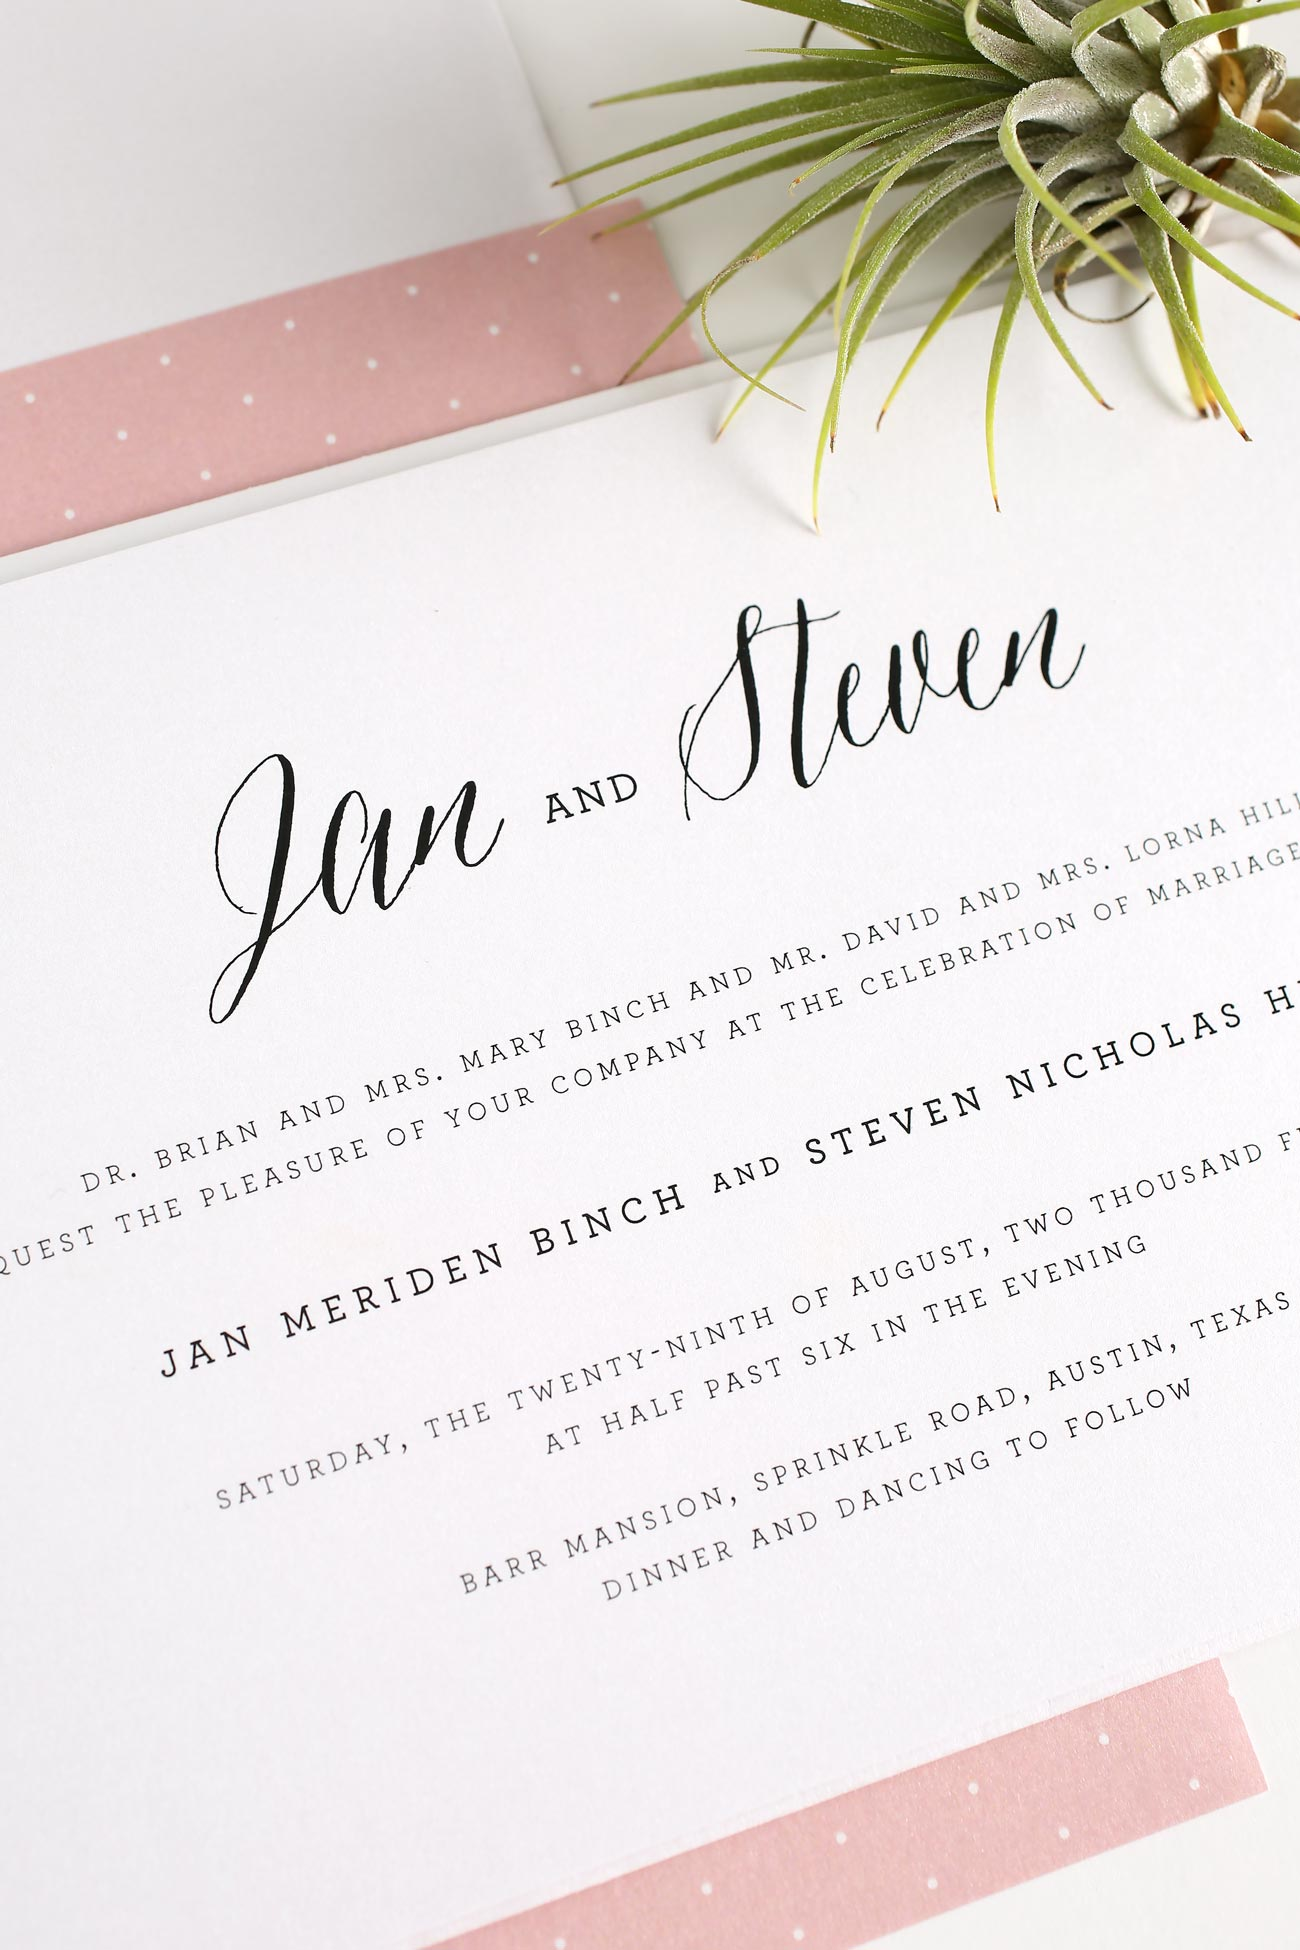 Rustic wedding invitations with blush polka dots